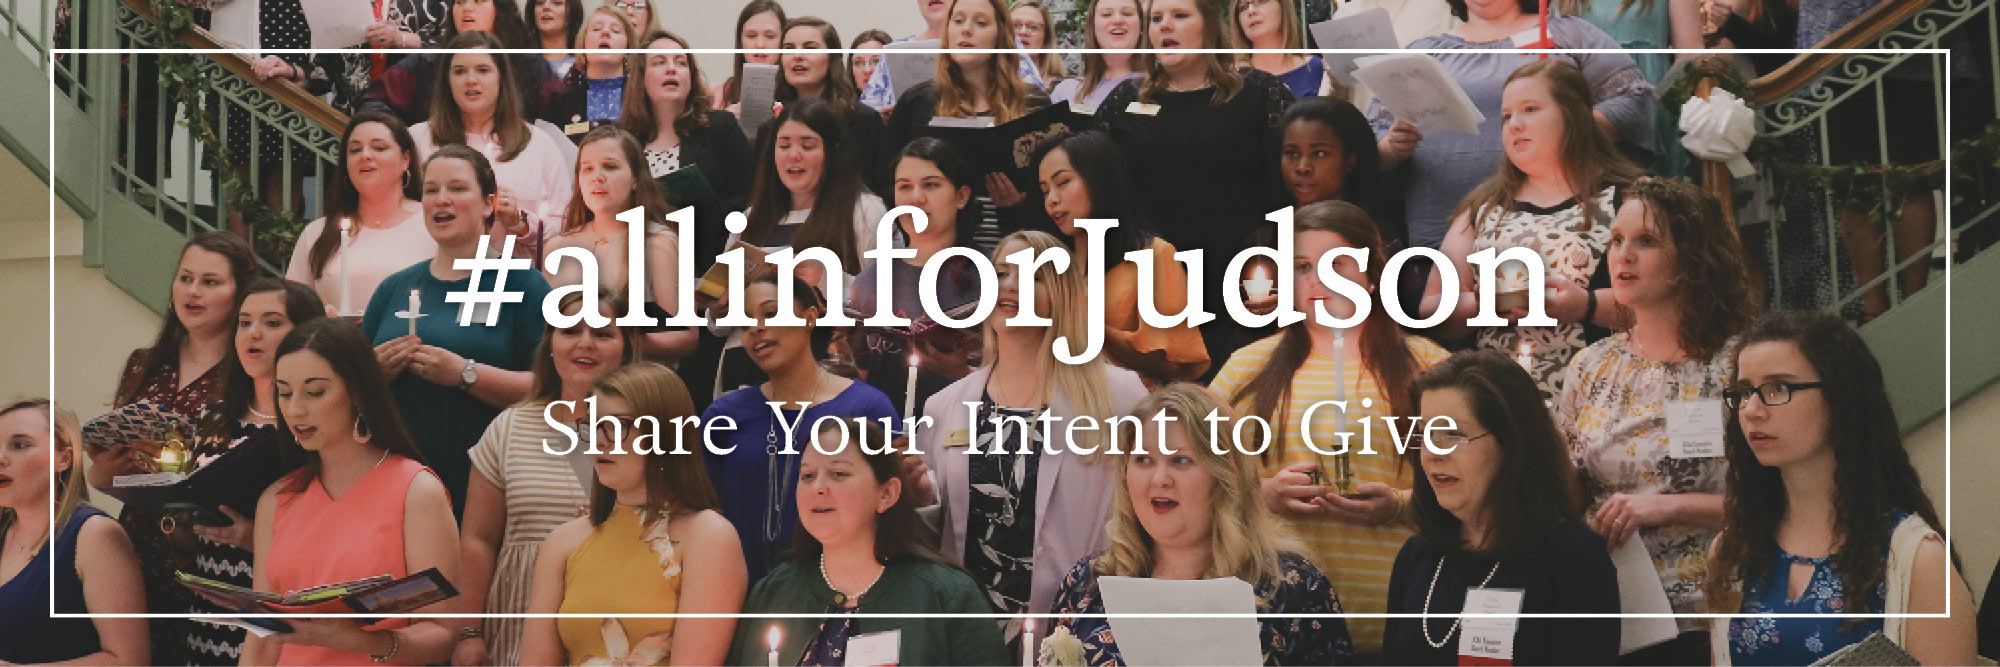 All in for Judson! Click to share your intent to give.